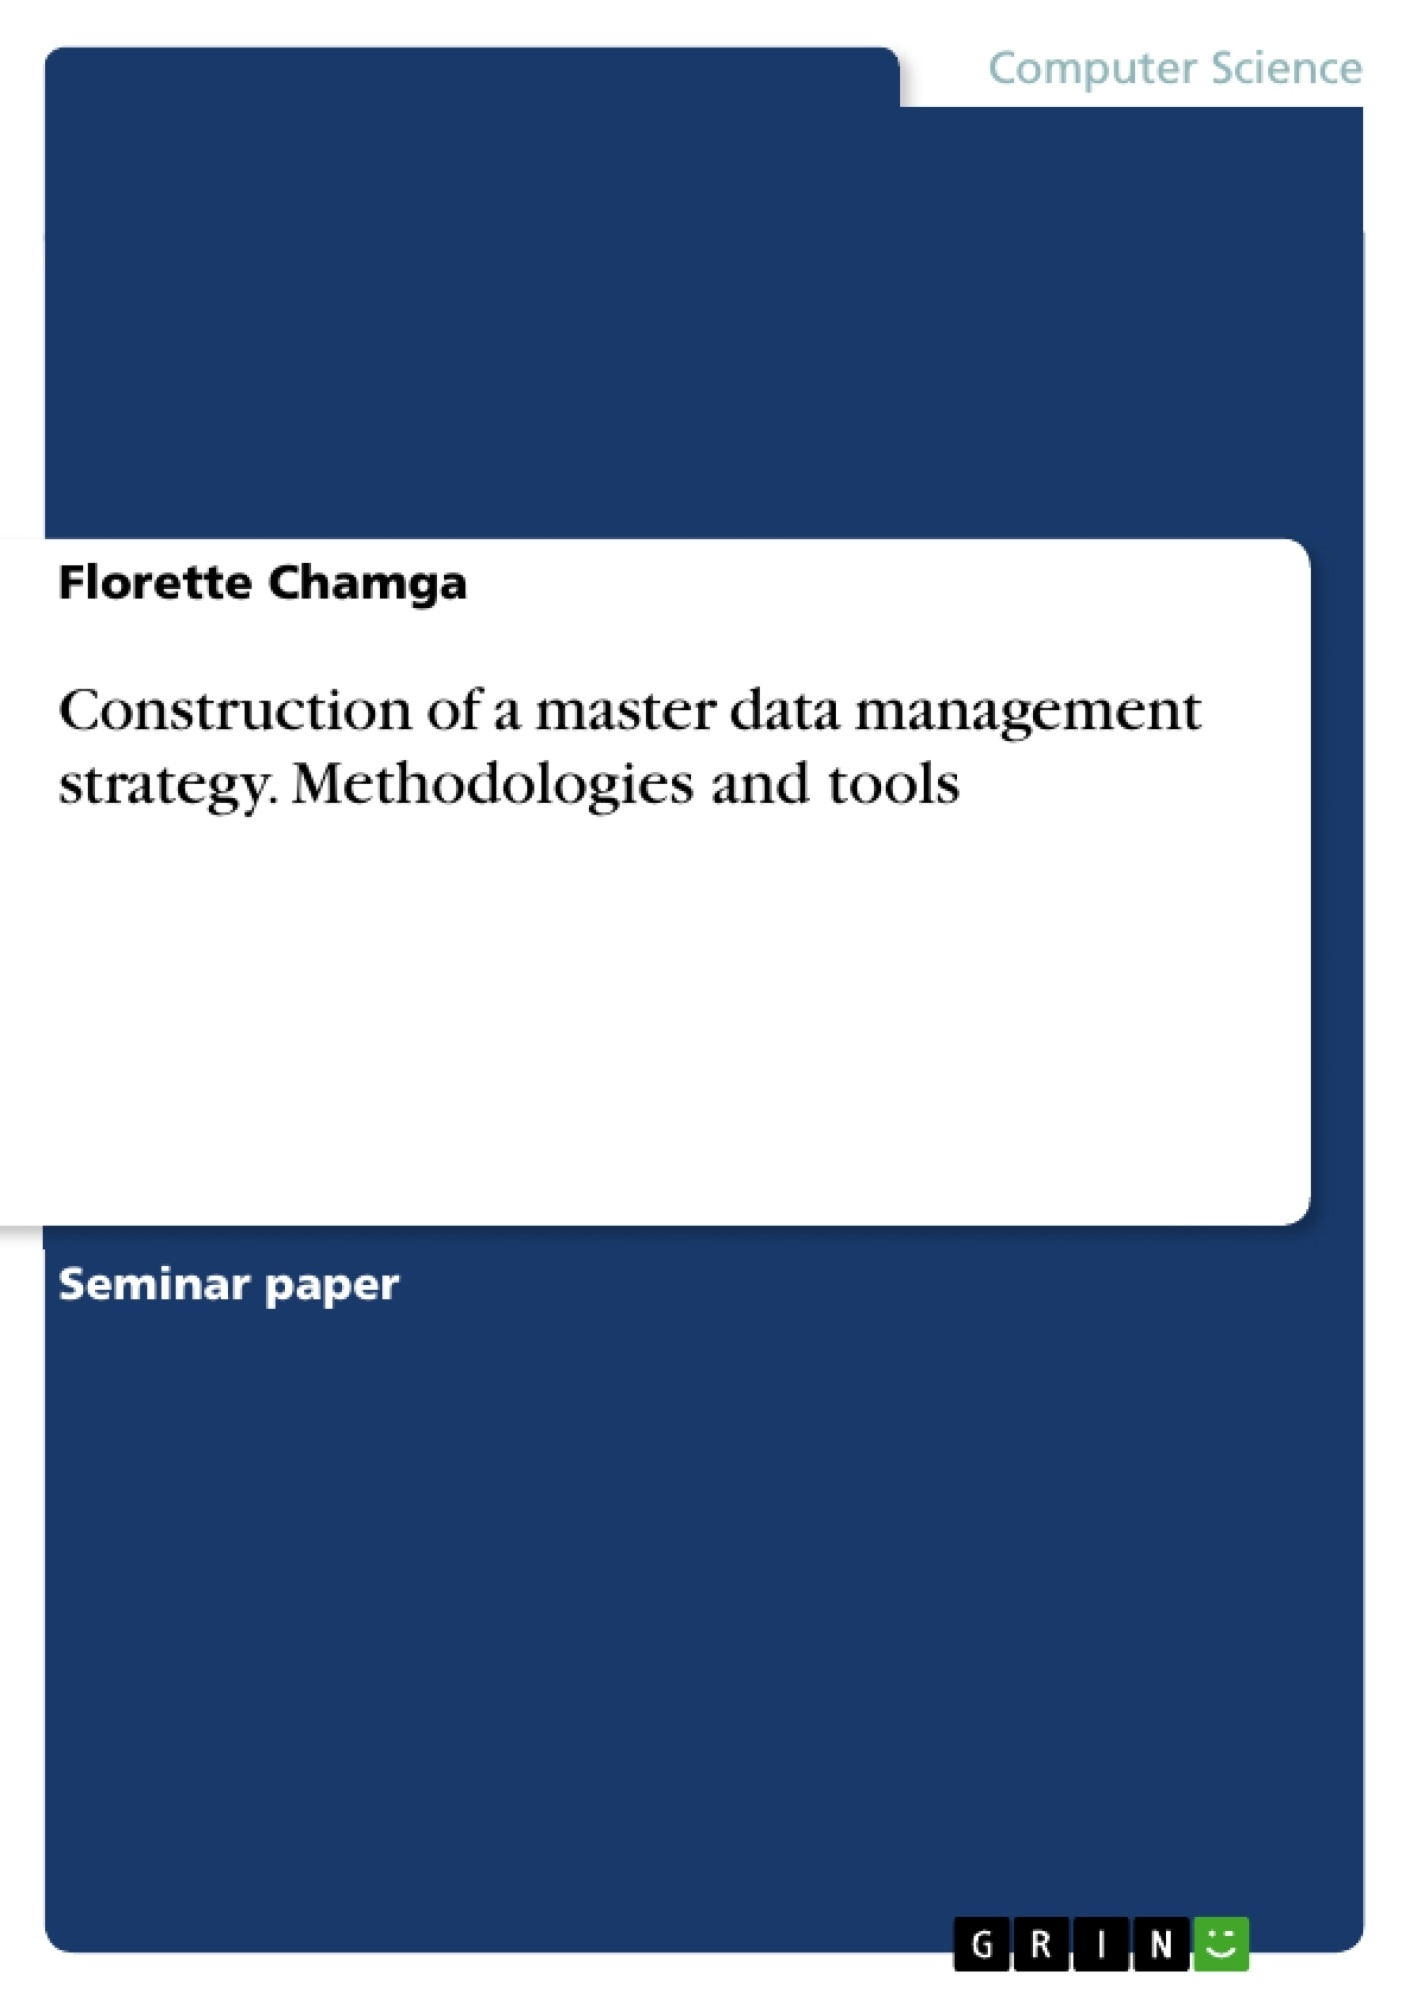 Title: Construction of a master data management strategy. Methodologies and tools